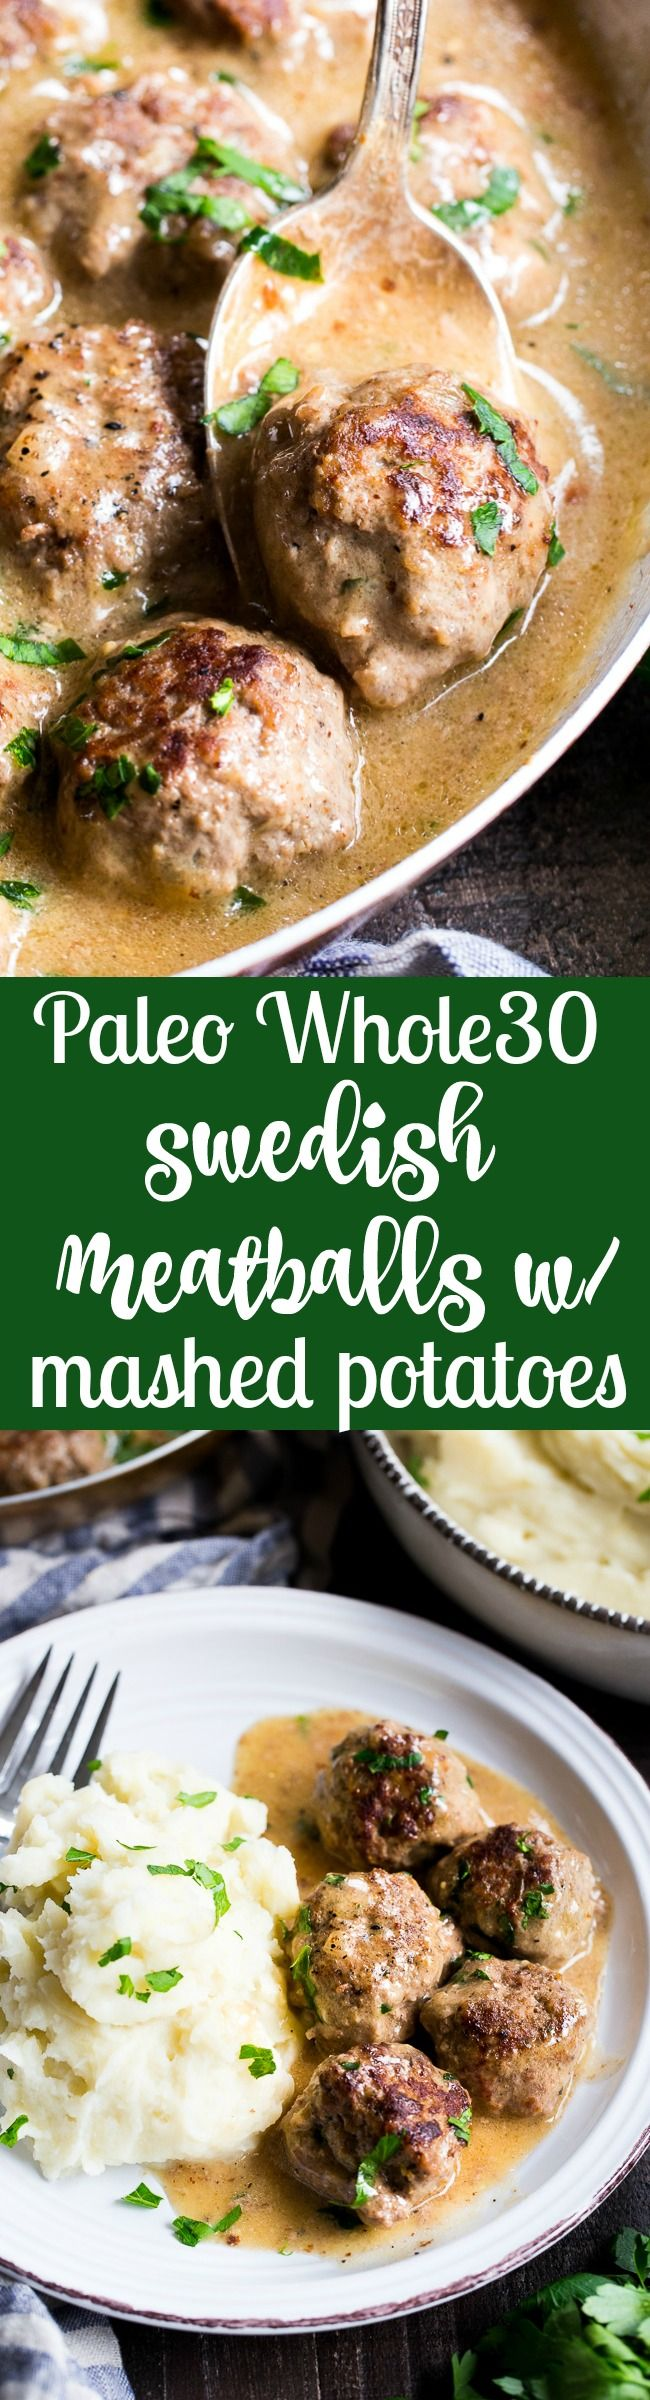 These Paleo Swedish meatballs in a creamy gravy, with dairy-free, Whole30 friendly mashed potatoes are pure comfort food for cold nights. Made with real-food ingredients, gluten-free, dairy-free, family approved!